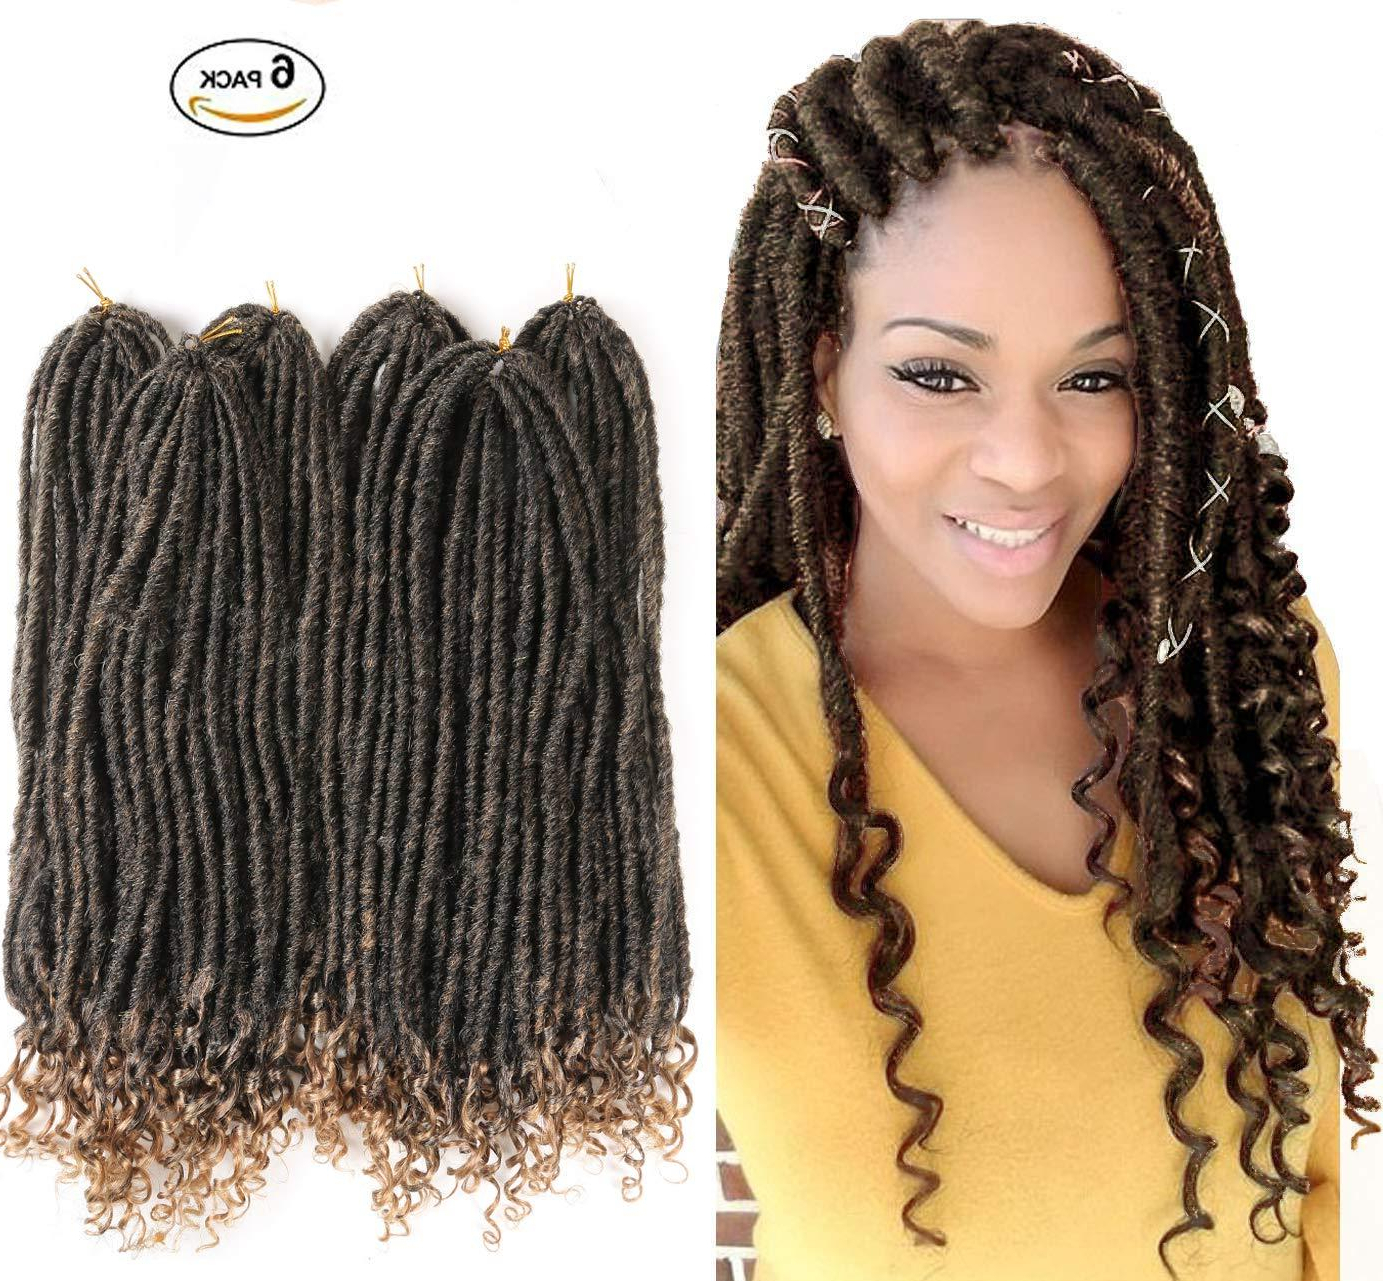 Goddess Locs Crochet Twist Hair With Curly Ends 24strands/pack Braiding Hair Extensions Dreadlocks Crochet Locs 1packs/lot 18inches In Current Twists Micro Braid Hairstyles With Curls (View 15 of 20)